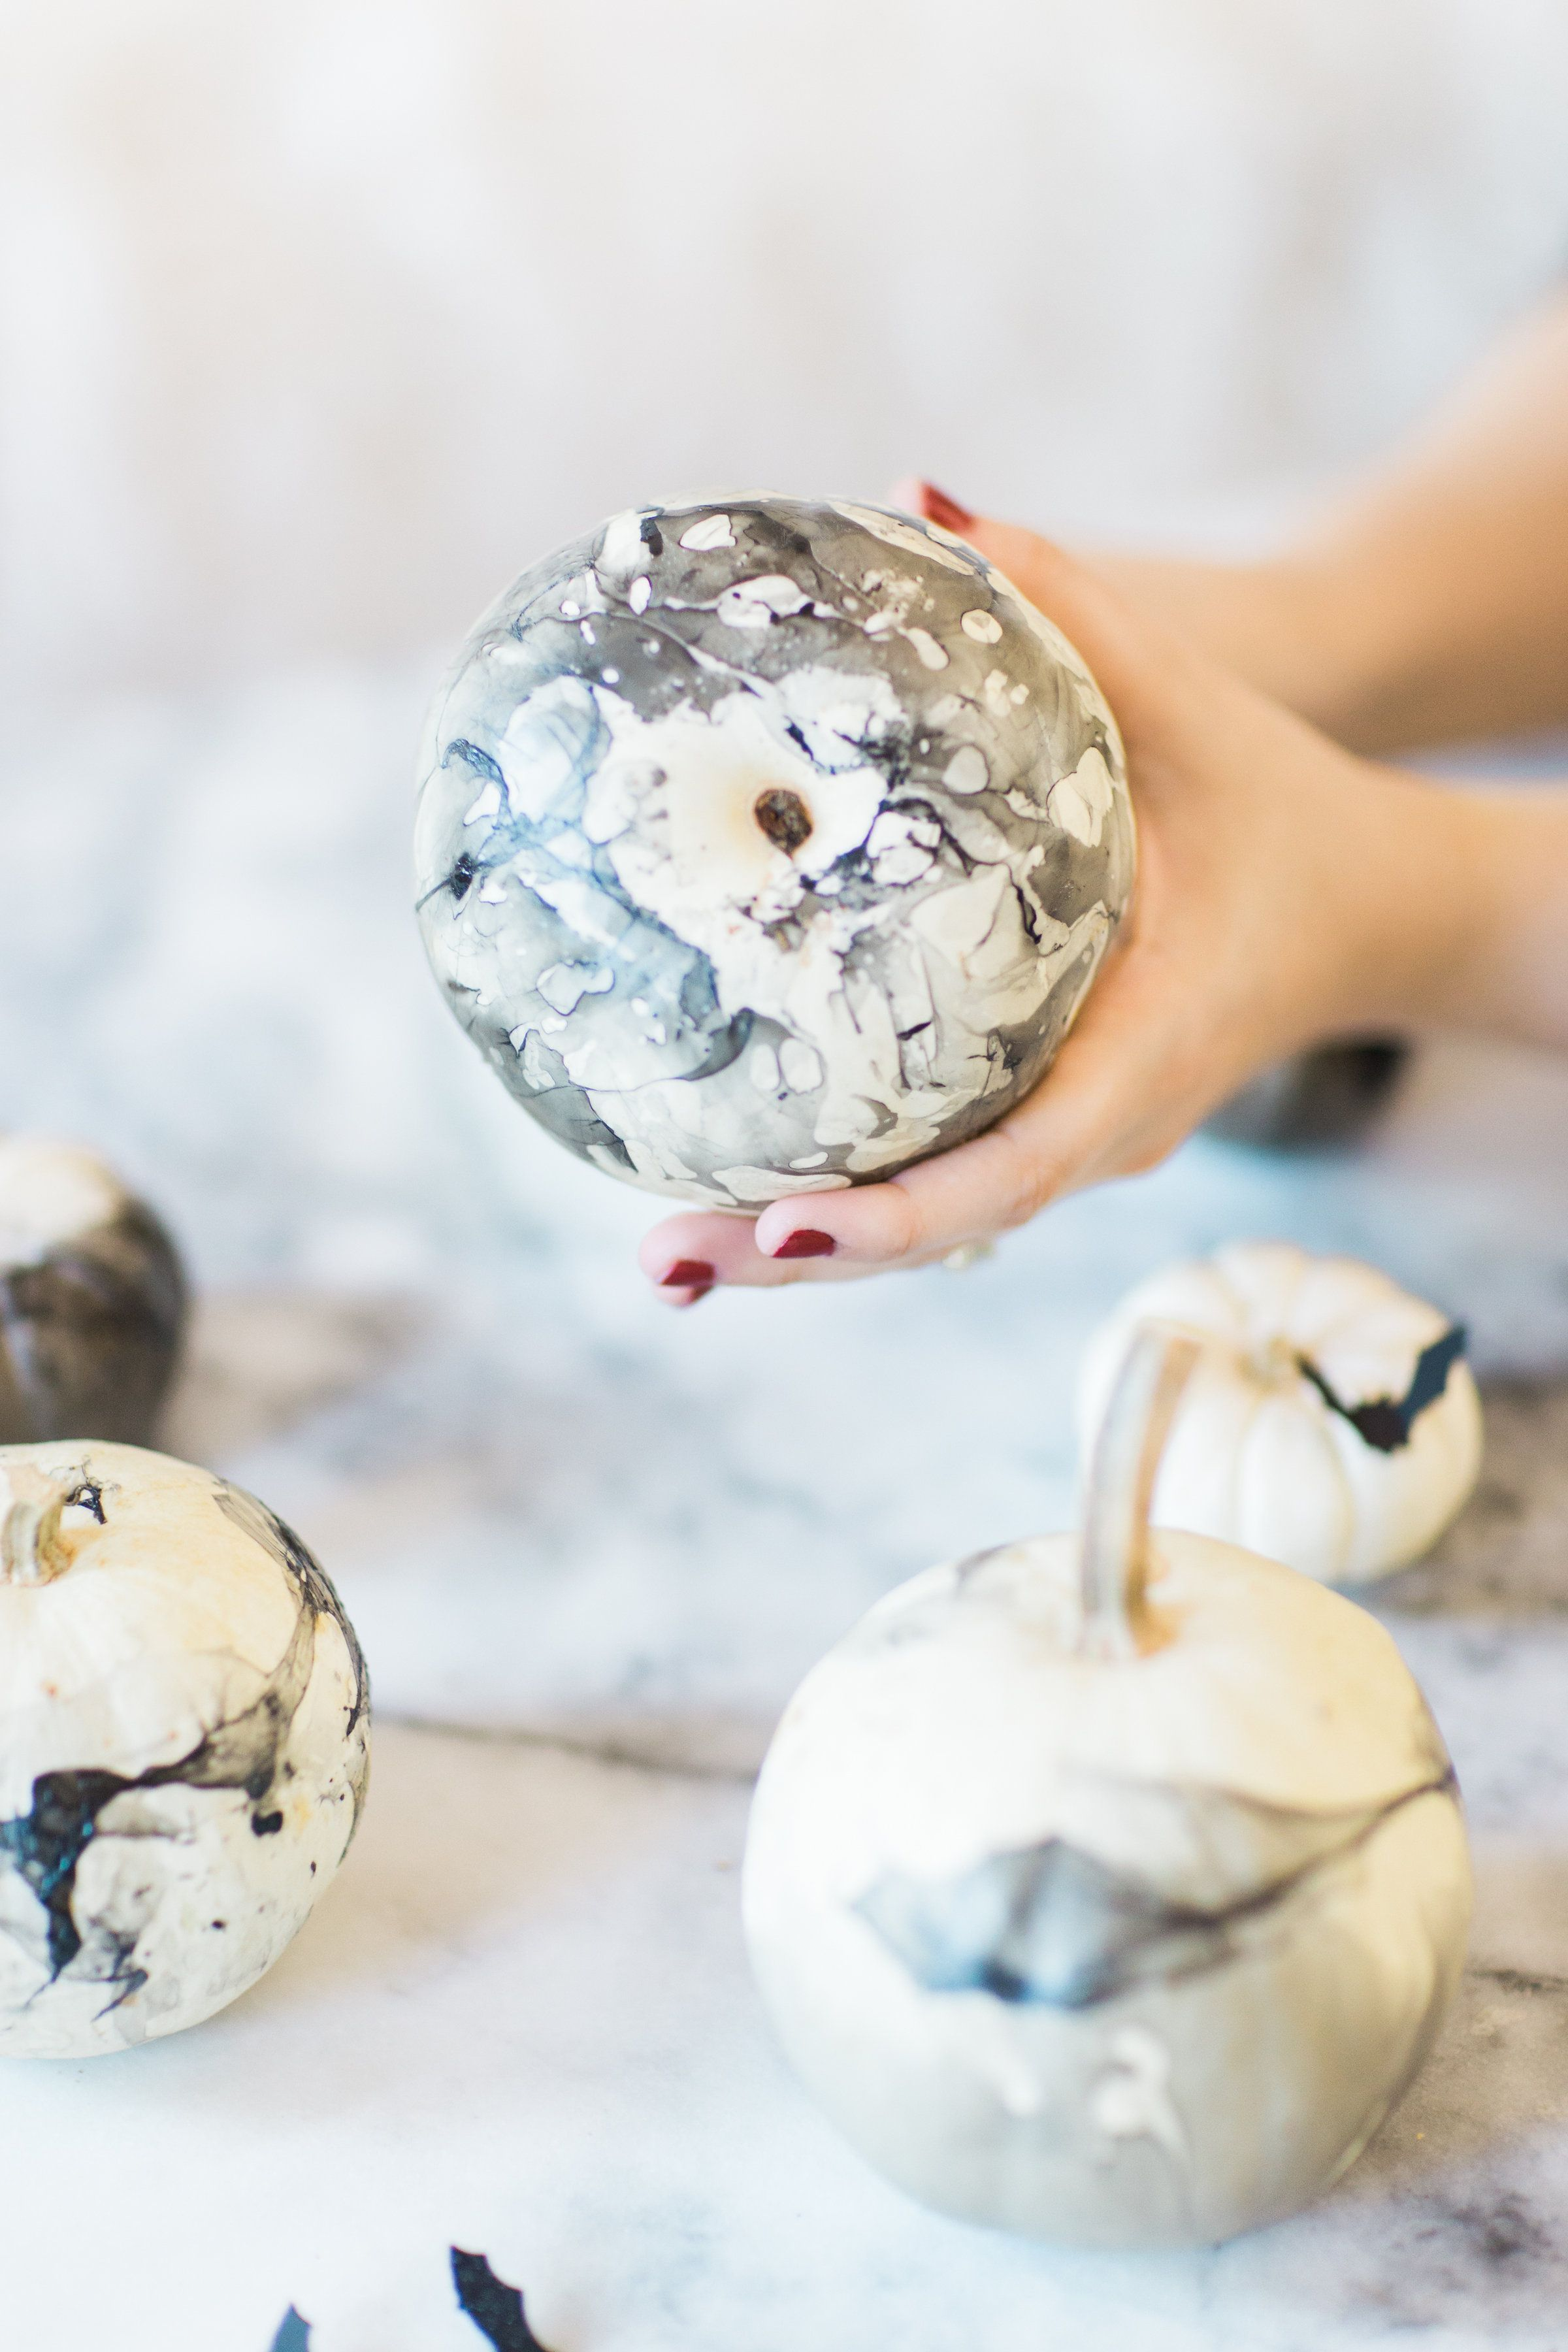 How to make chic and easy DIY marbled pumpkins (perfect for Halloween!) | Marble pumpkin painting | DIY marbled pumpkins | chic pumpkin painting ideas | easy pumpkin painting | halloween pumpkin painting | Creative pumpkin painting ideas | Glitter Inc. #pumpkinpainting #pumpkindecor #pumpkinpaintingideascreative How to make chic and easy DIY marbled pumpkins (perfect for Halloween!) | Marble pumpkin painting | DIY marbled pumpkins | chic pumpkin painting ideas | easy pumpkin painting | halloween #pumpkinpaintingideascreative